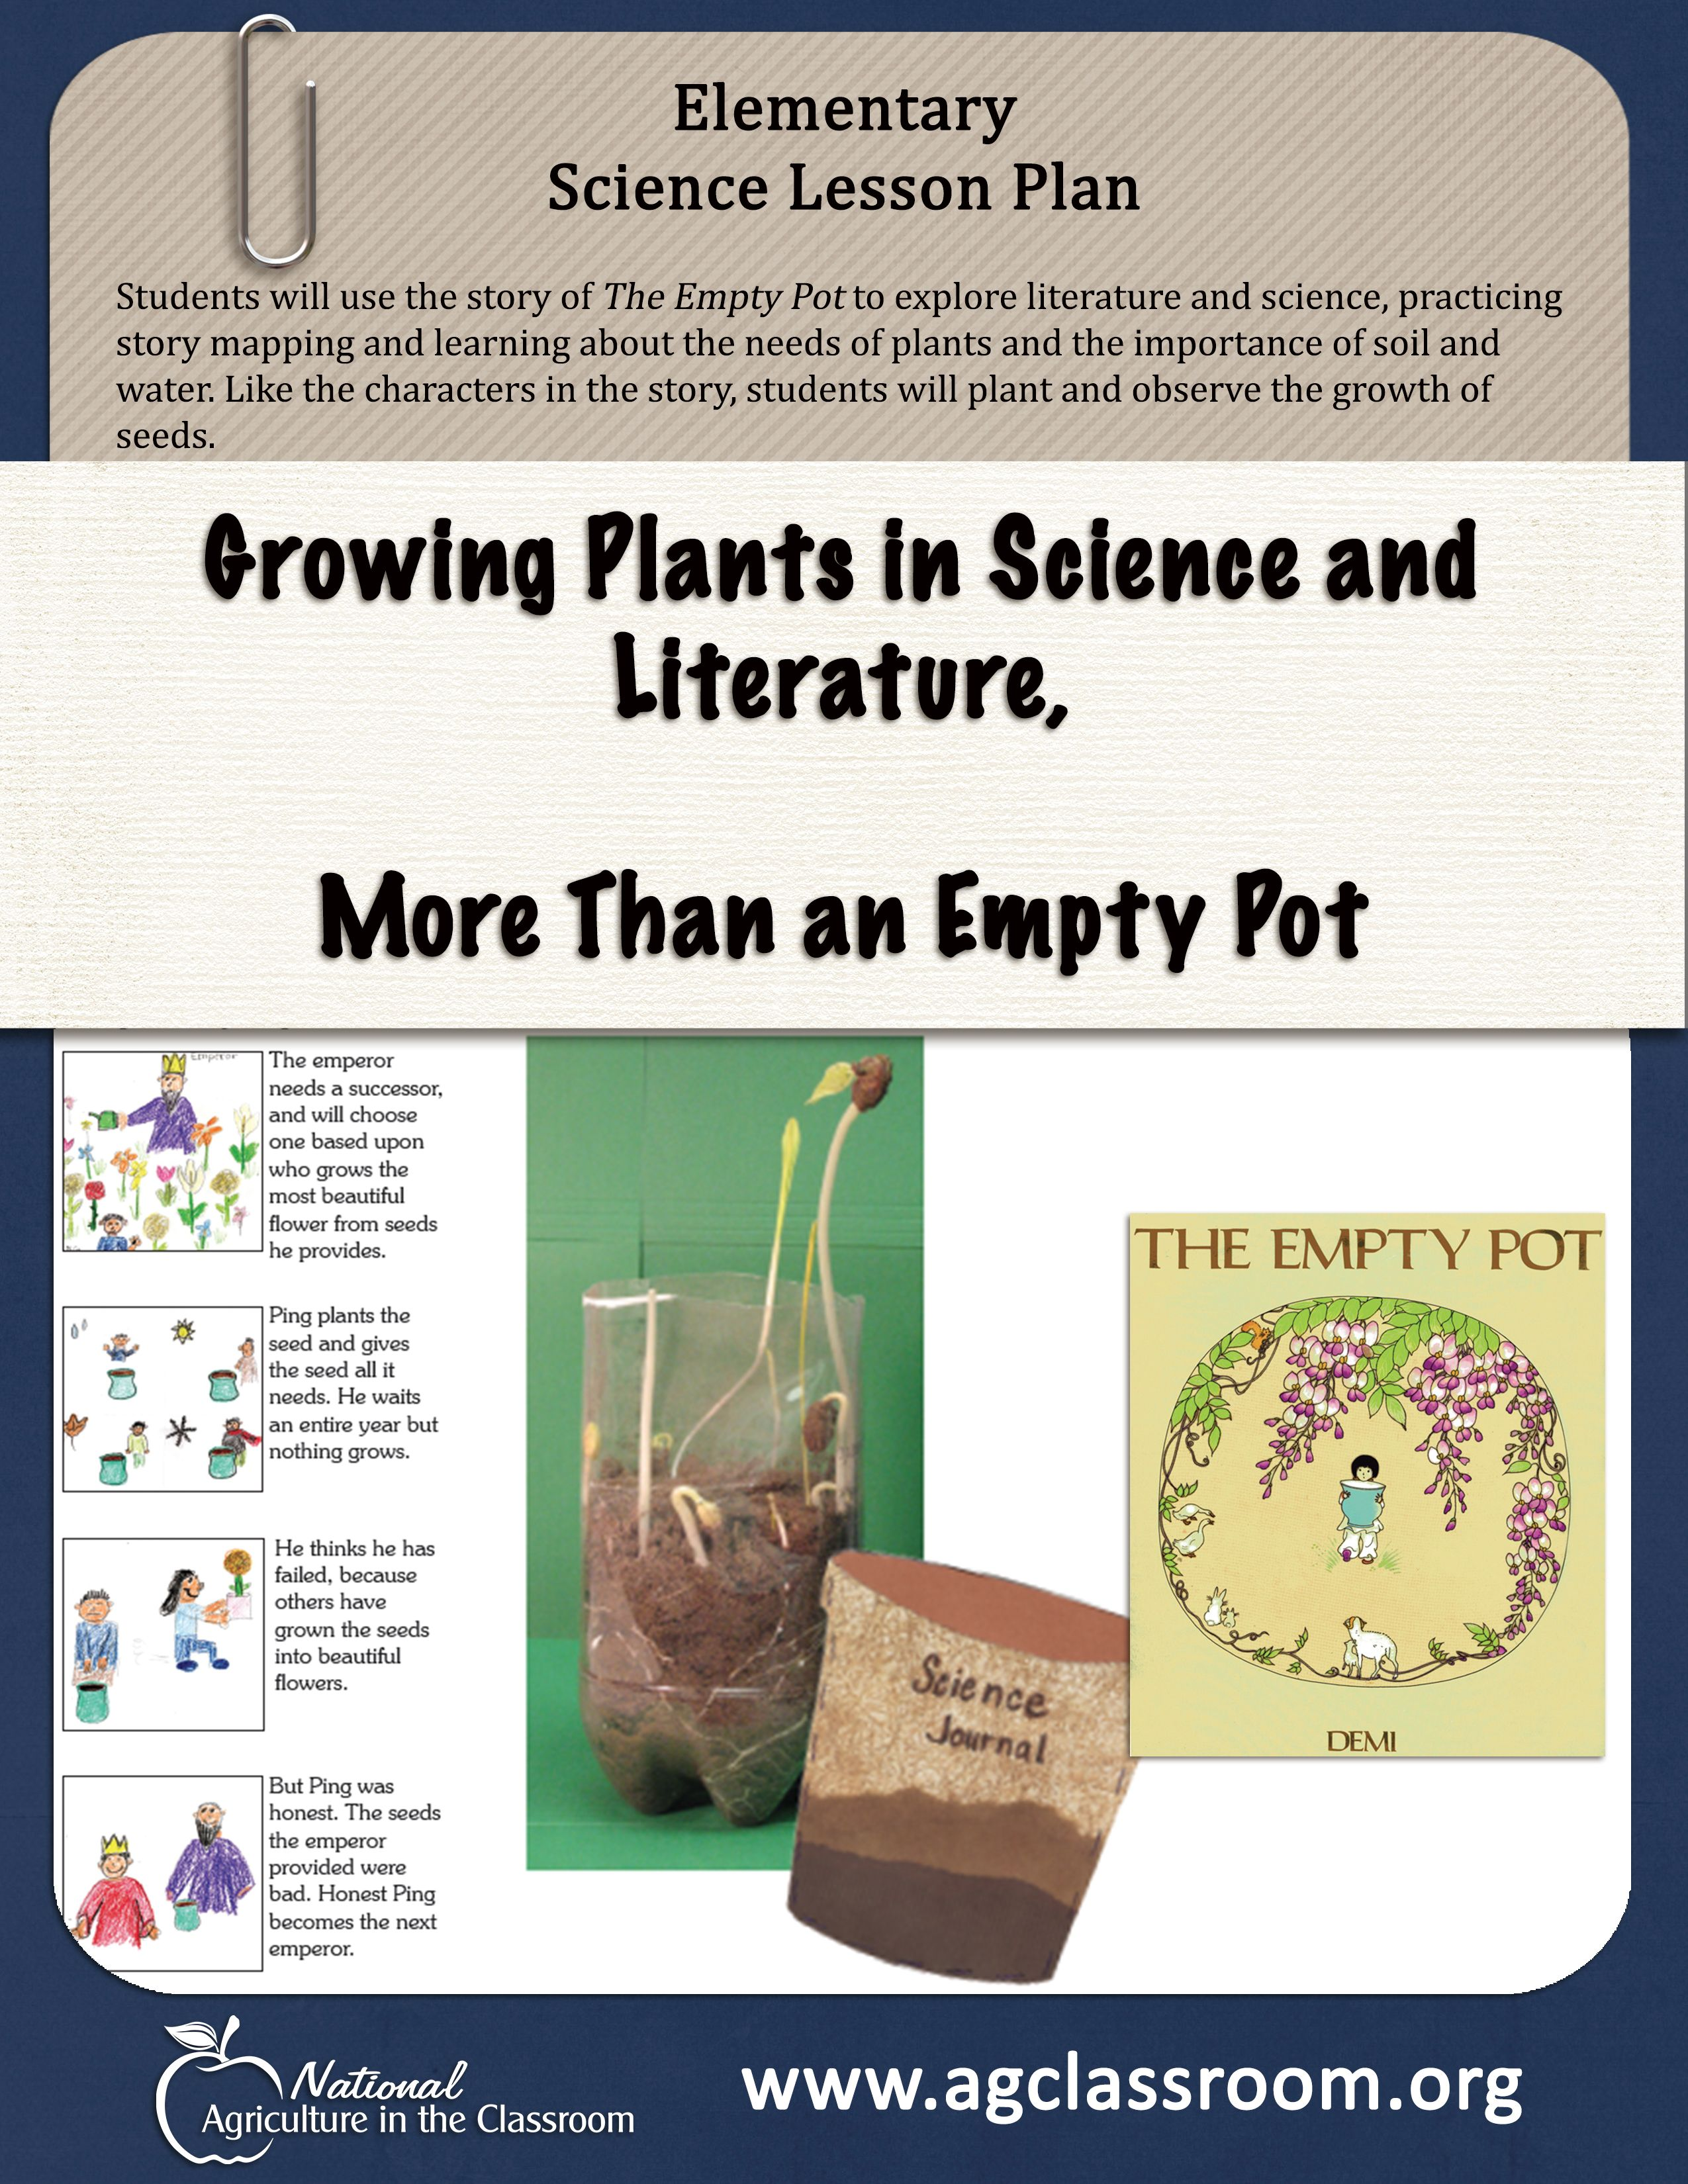 Complete Lesson Plan And Handouts To Teach Students About